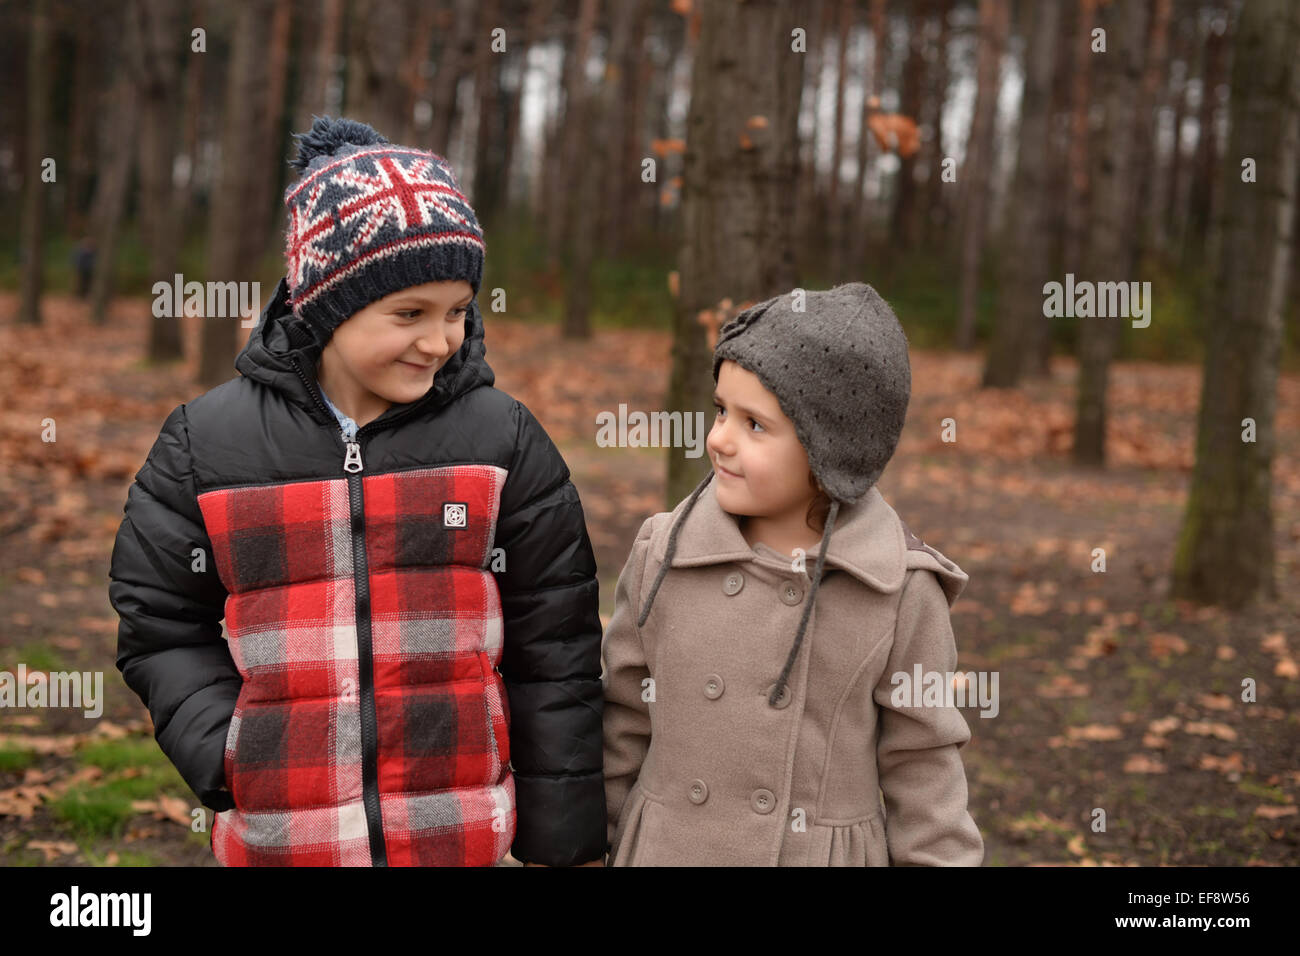 Brother (6-7) and sister (4-5) walking in forest - Stock Image